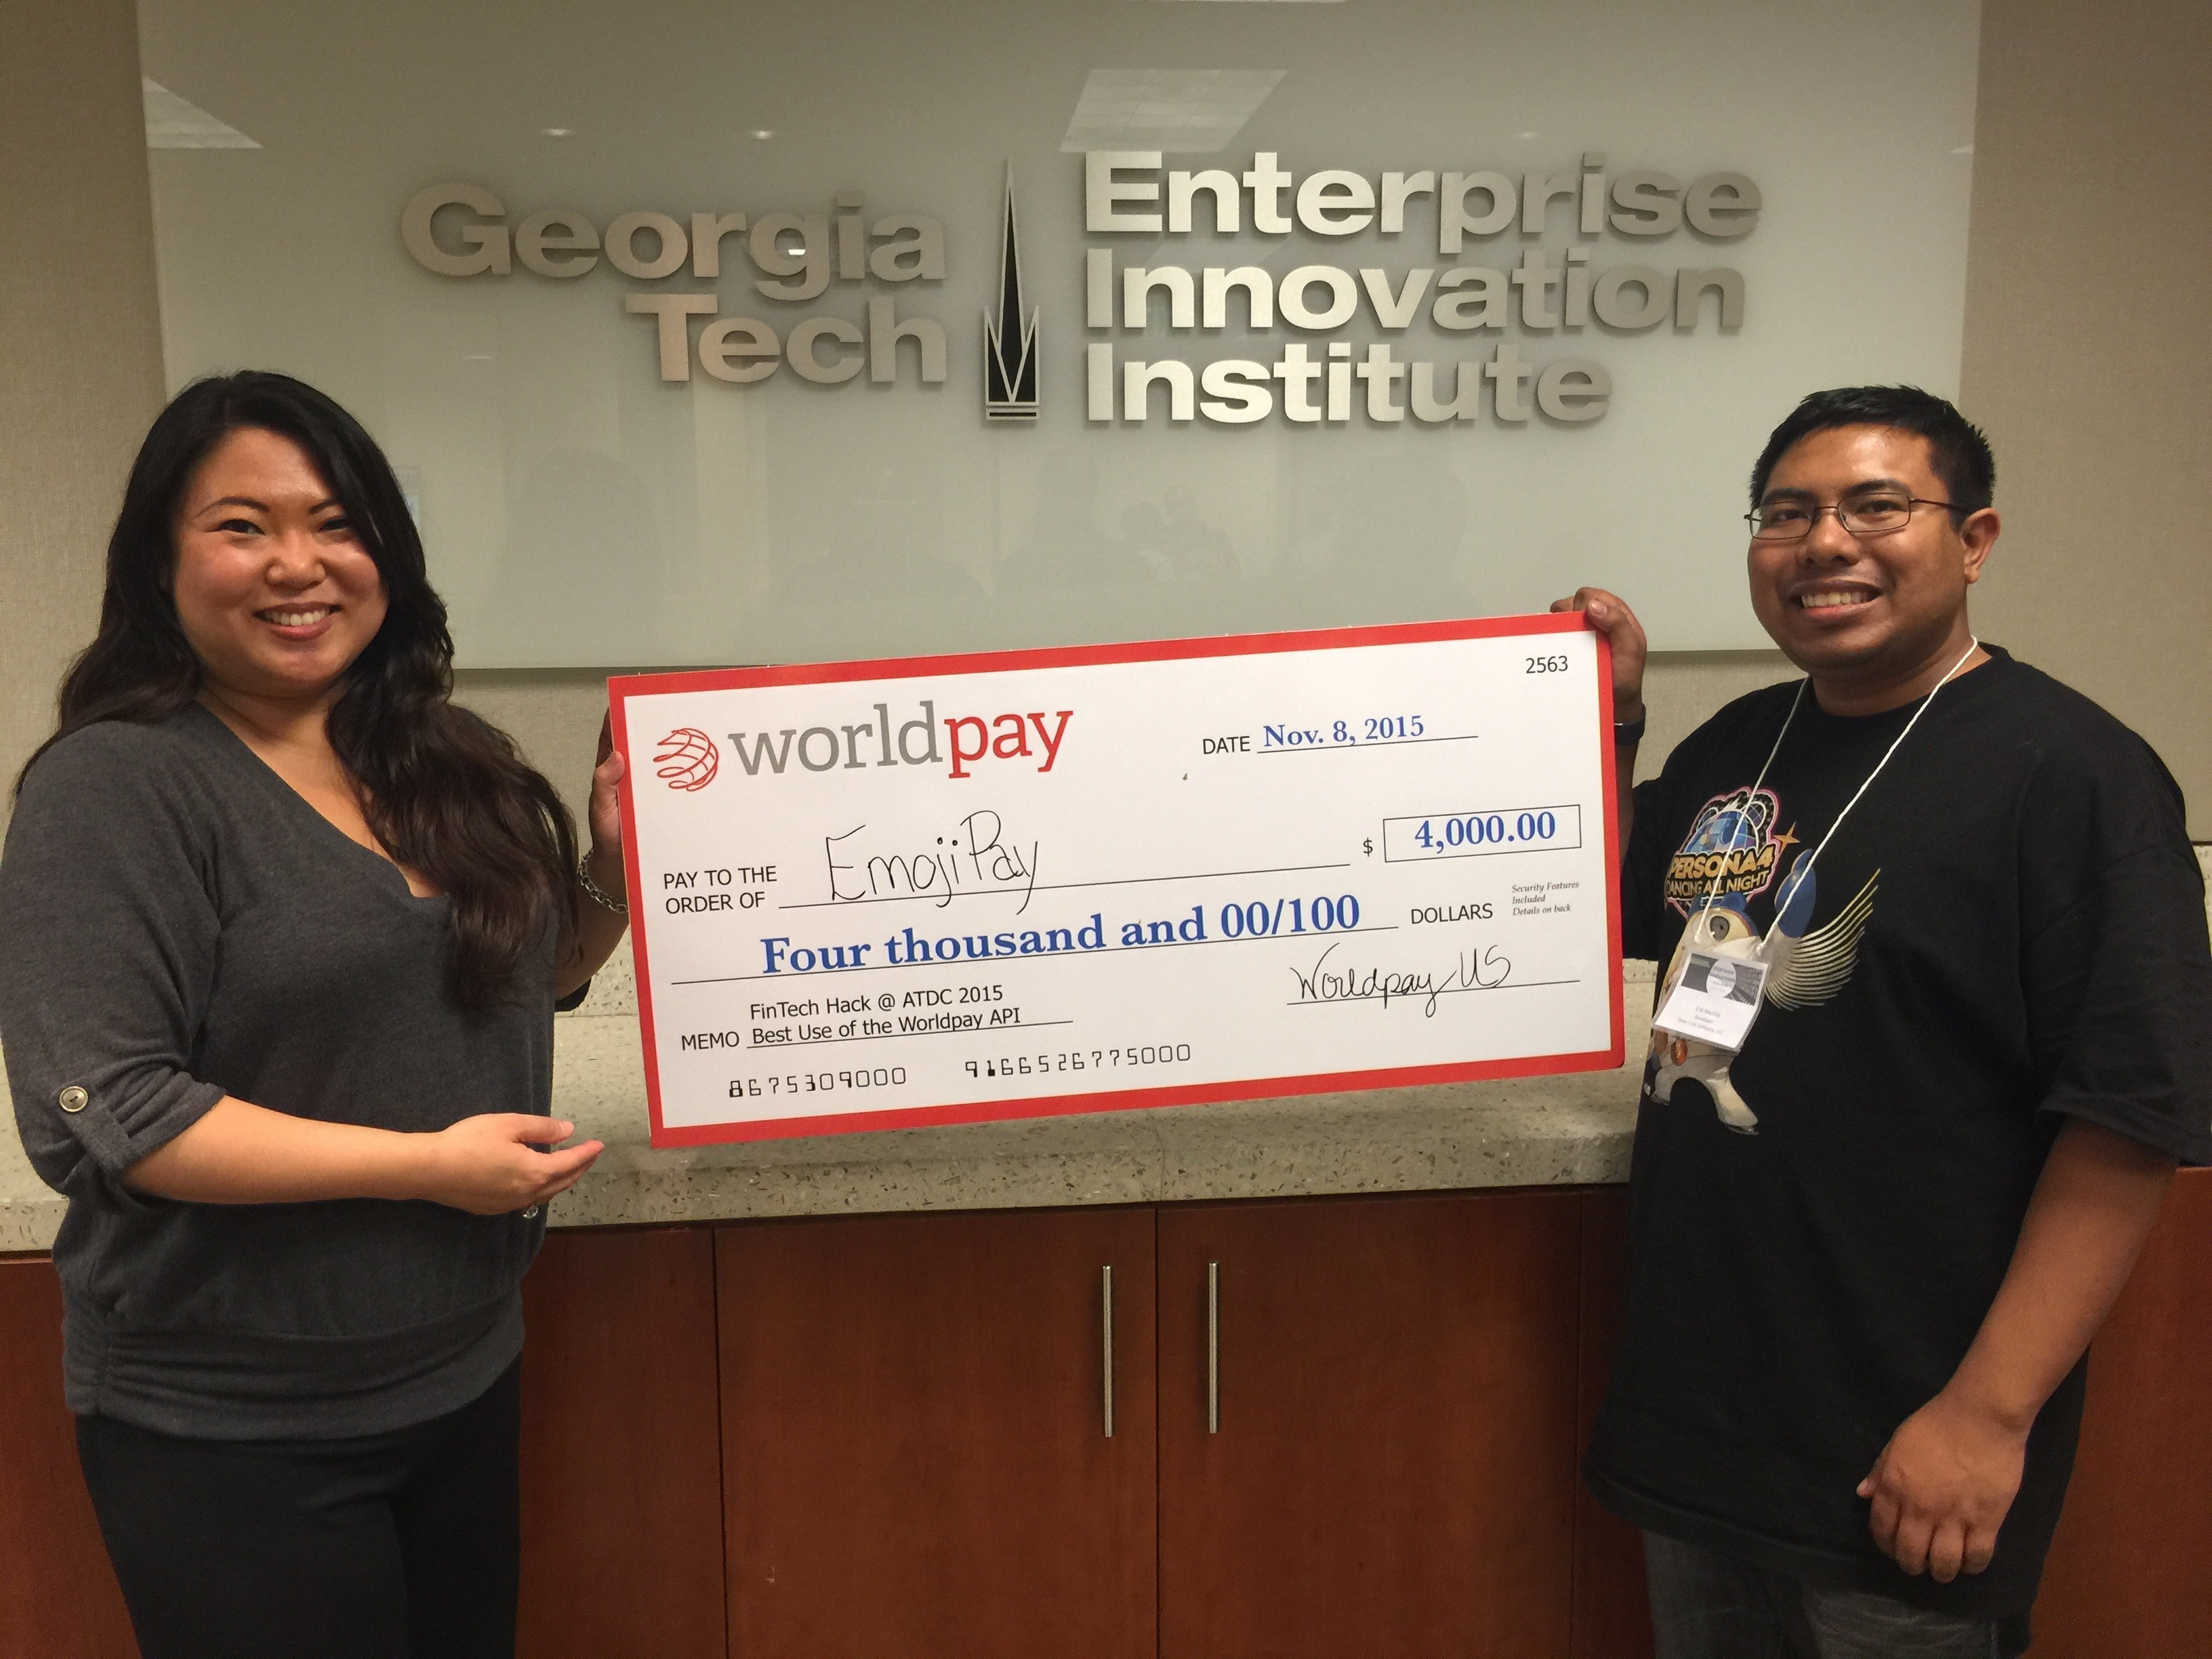 FinTech Hack @ATDC 2015 Awards Best Use of Worldpay APIs Winner: Emoji Pay